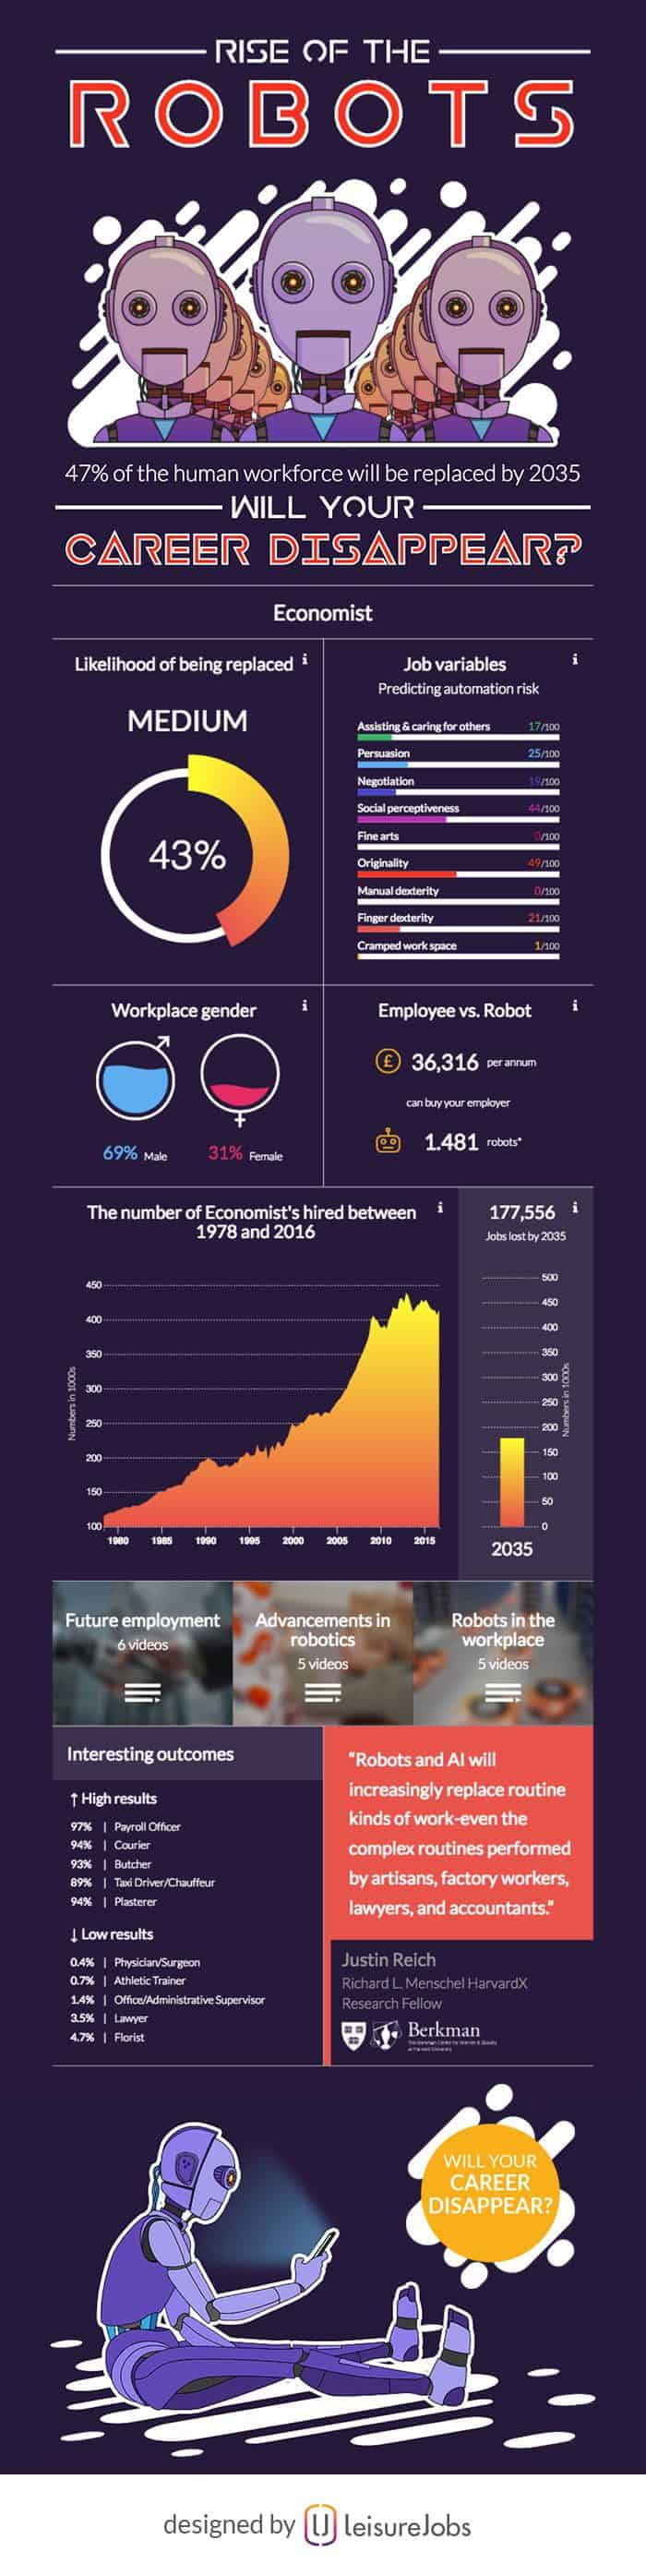 infographic describes the rise of robots and automated technology and how it could affect careers